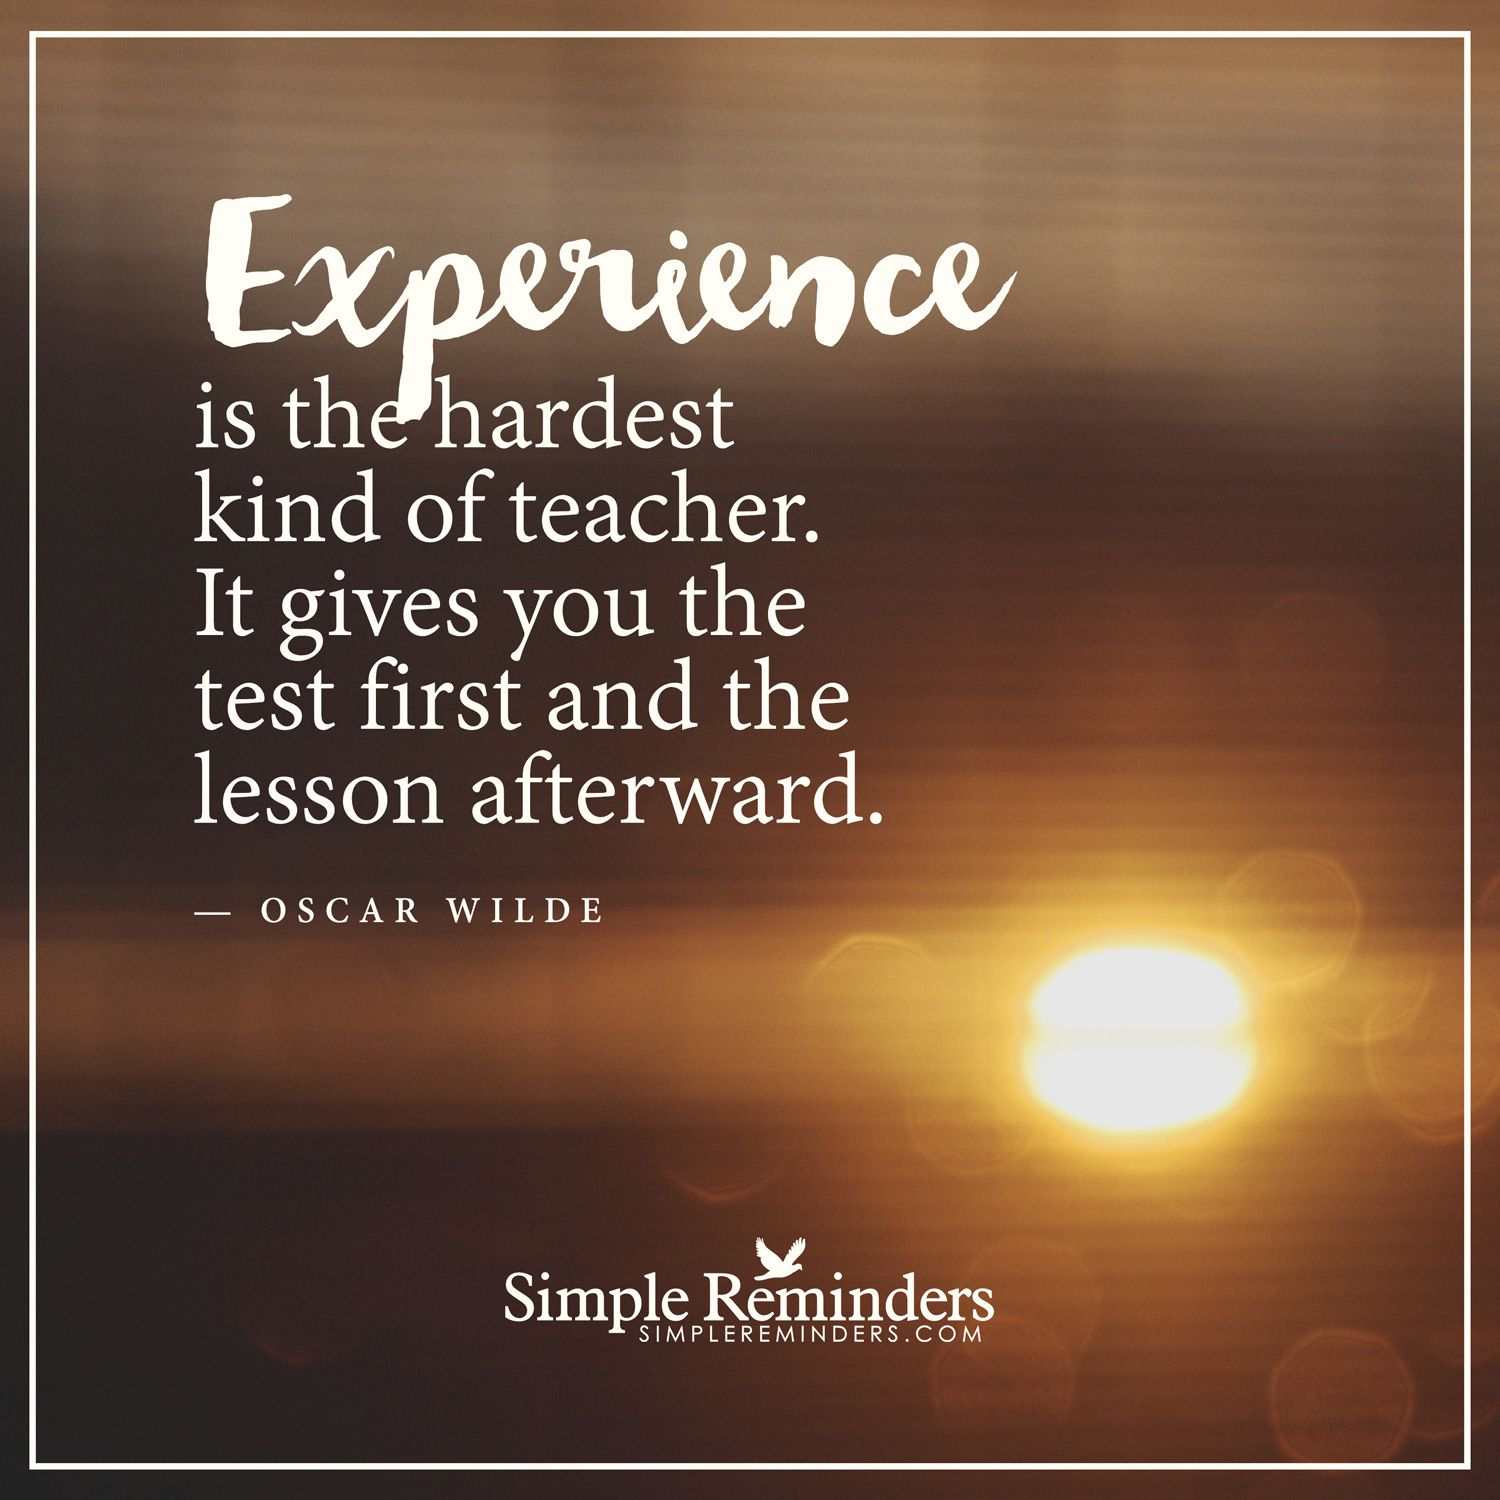 Quotes About Experience: Experience Is The Hardest Kind Of Teacher Experience Is